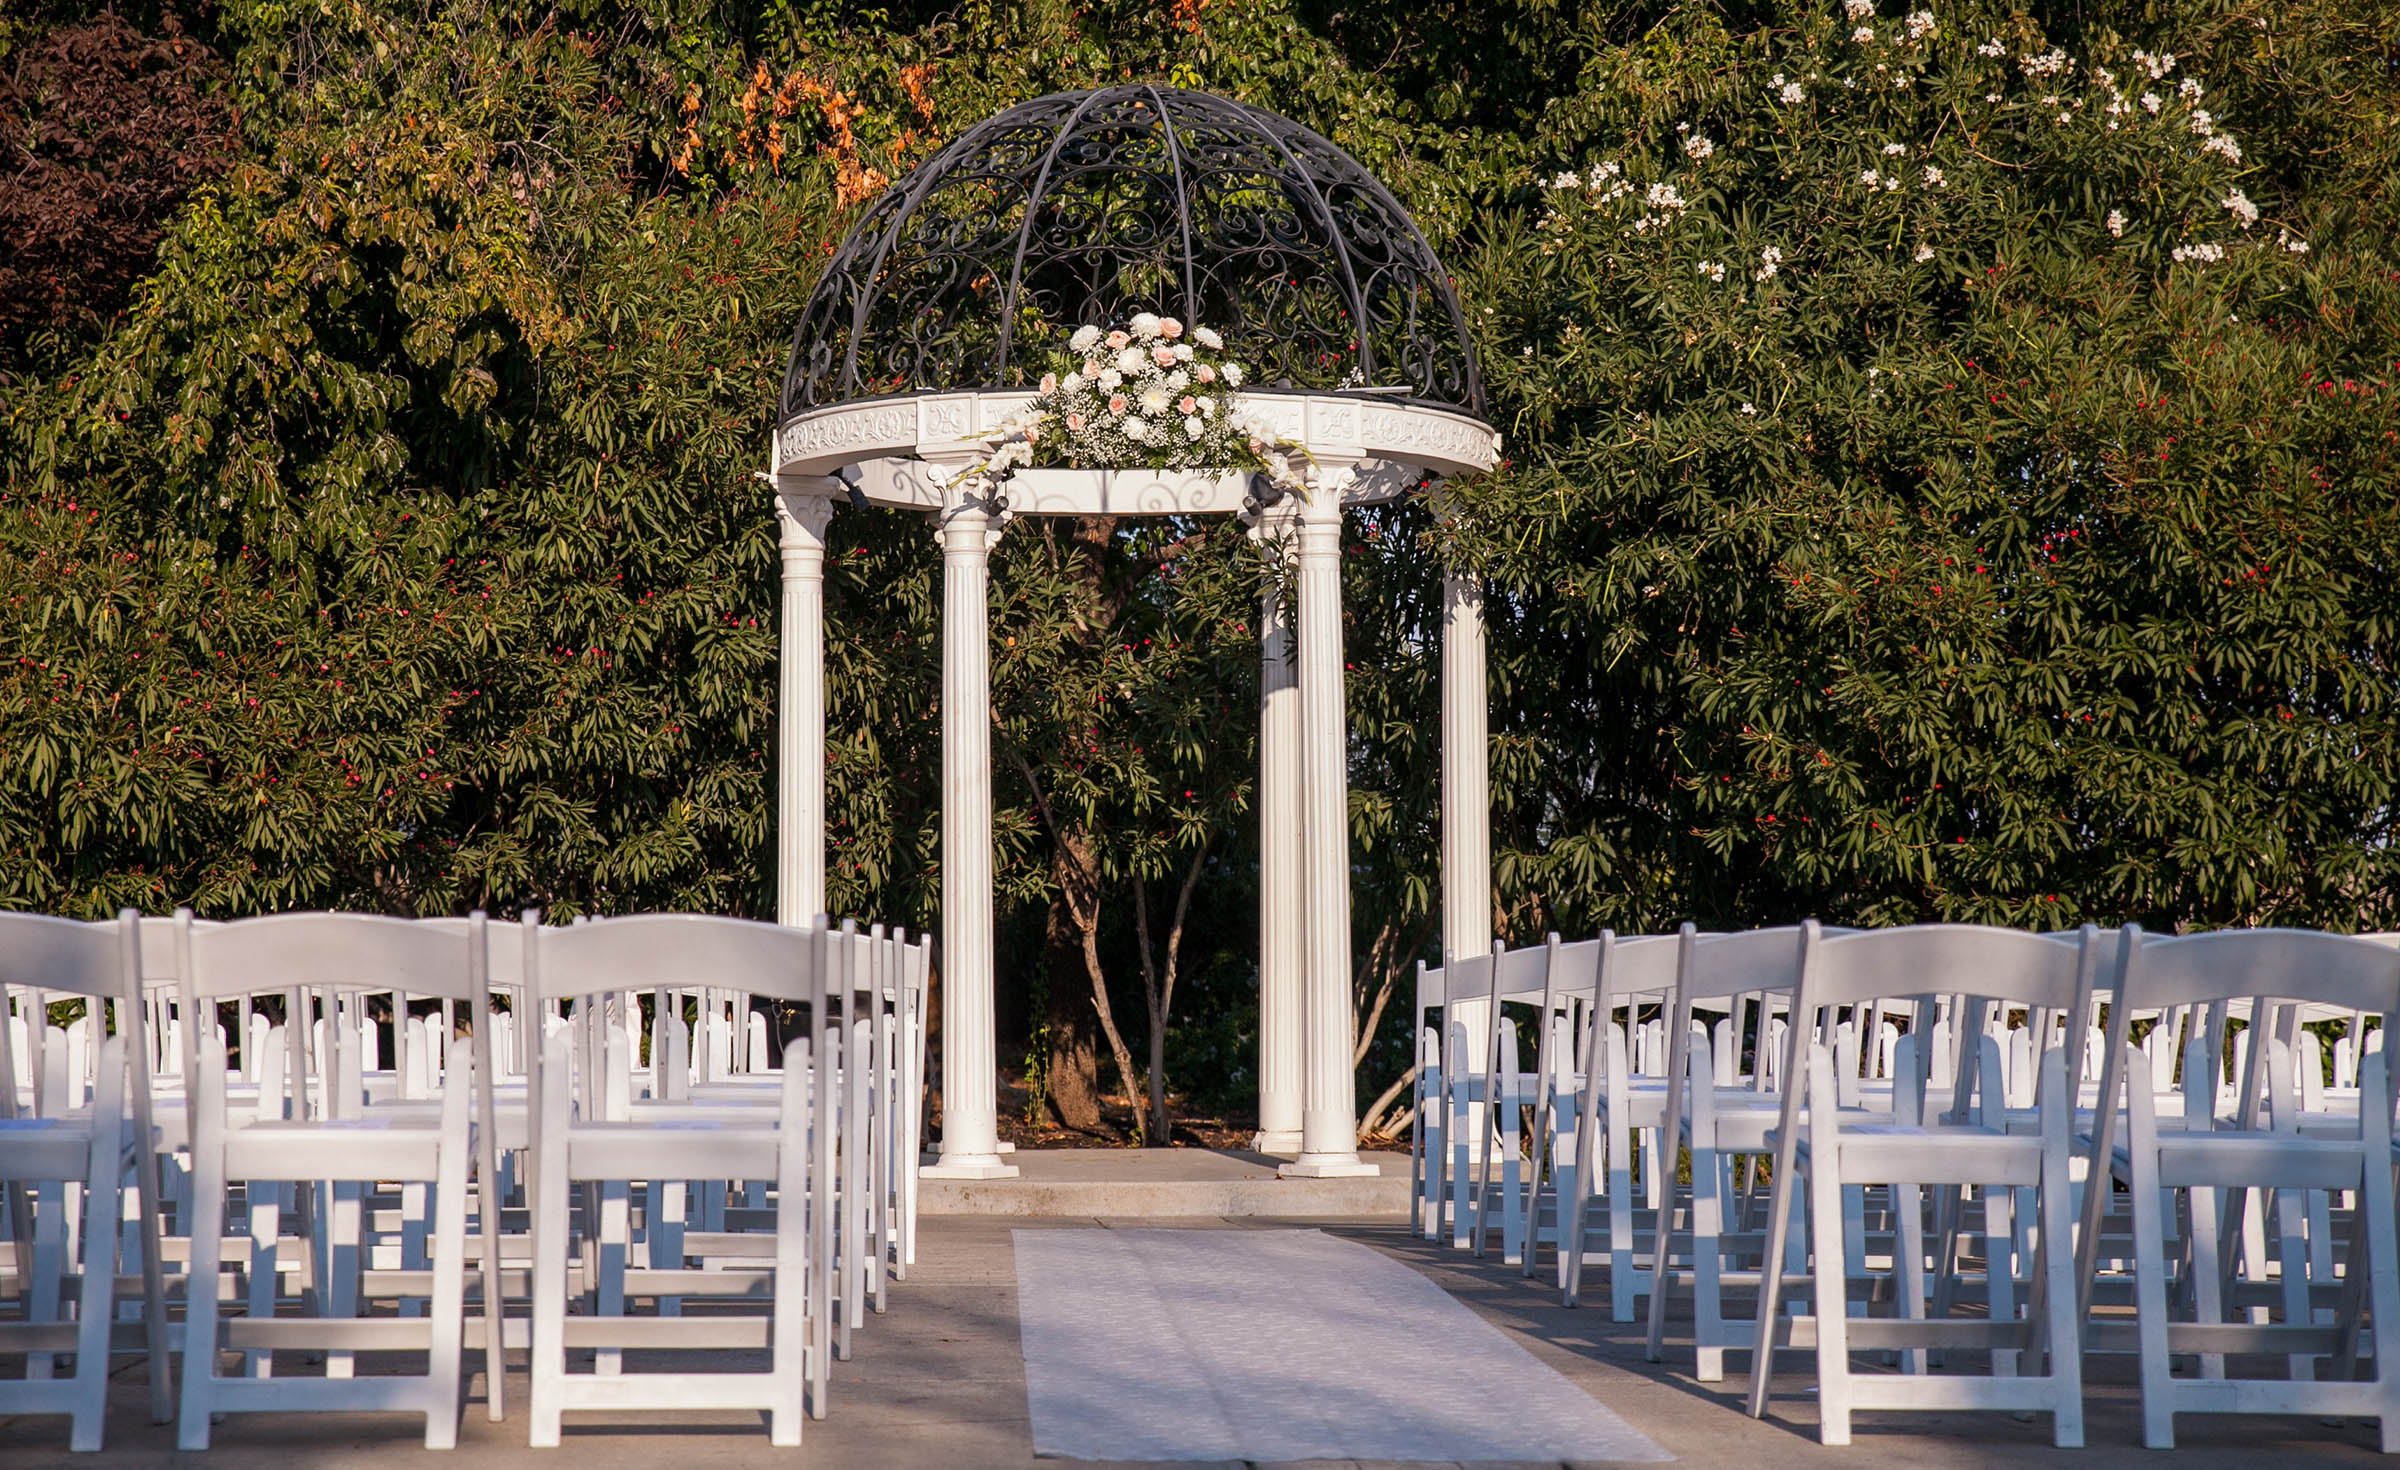 Outdoor wedding ceremony under the arbor - Brentwood - Brentwood, California - Contra Costa County - Wedgewood Weddings